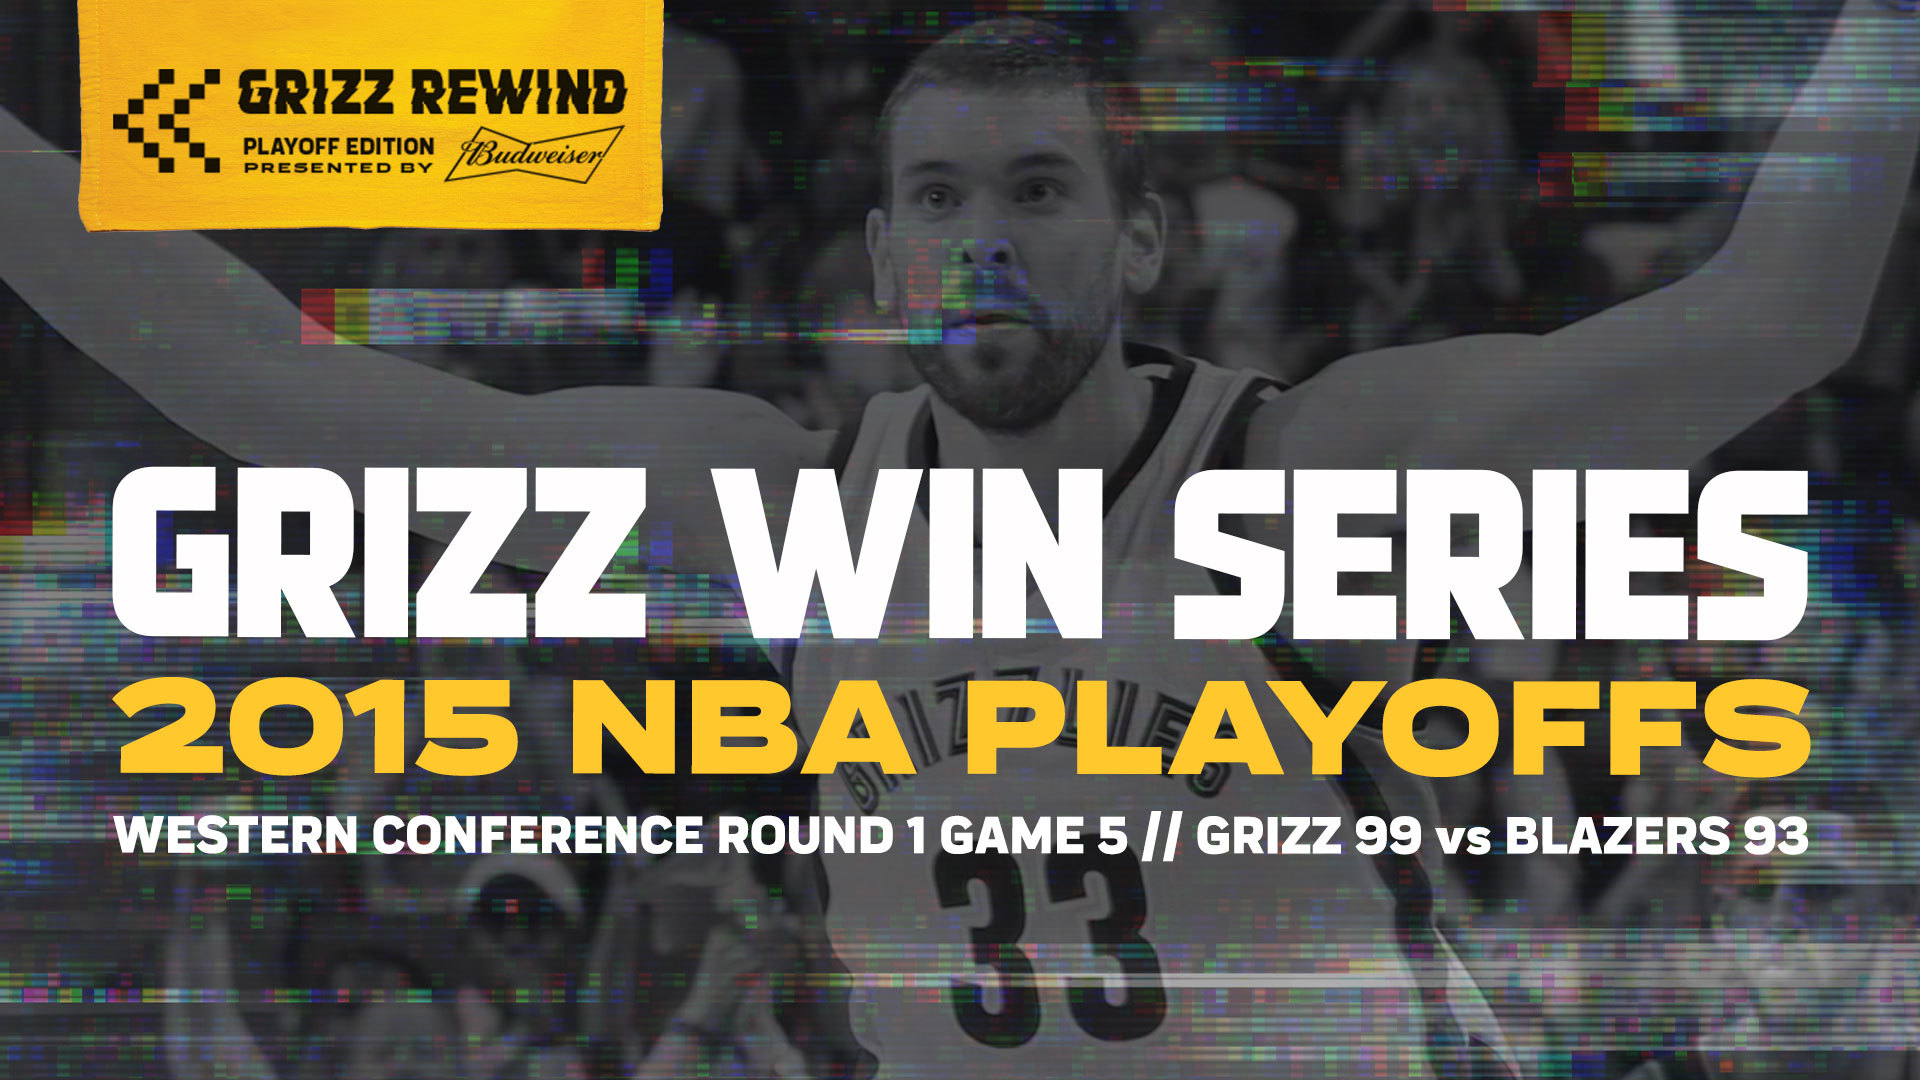 Grizz Win Series | Grizz Rewind: Playoff Edition 4.29.15